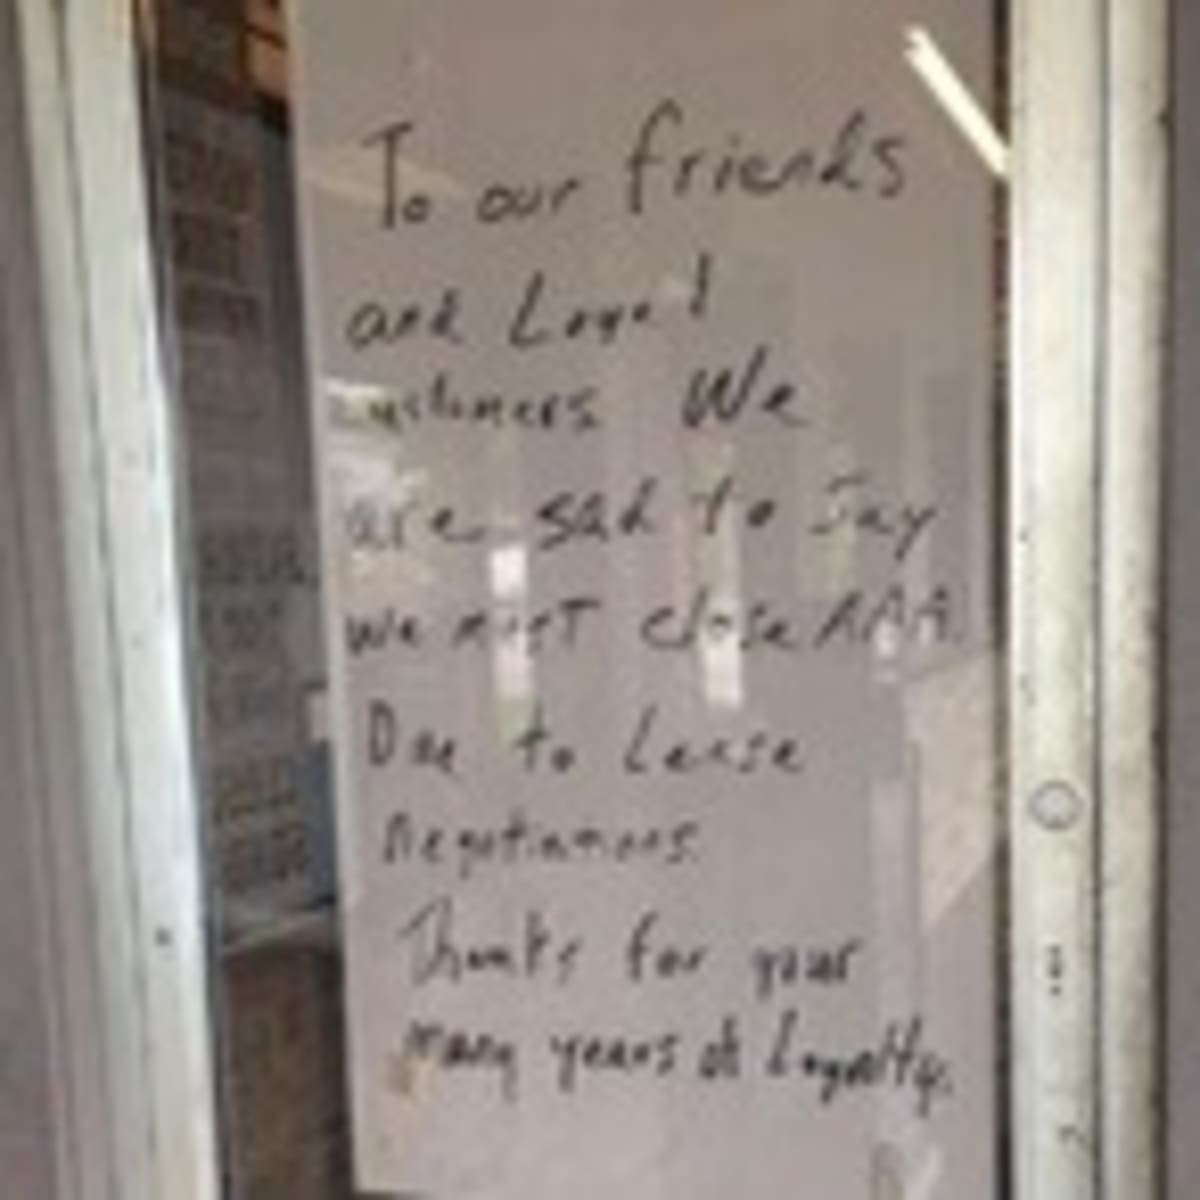 Triple A closing posted on door